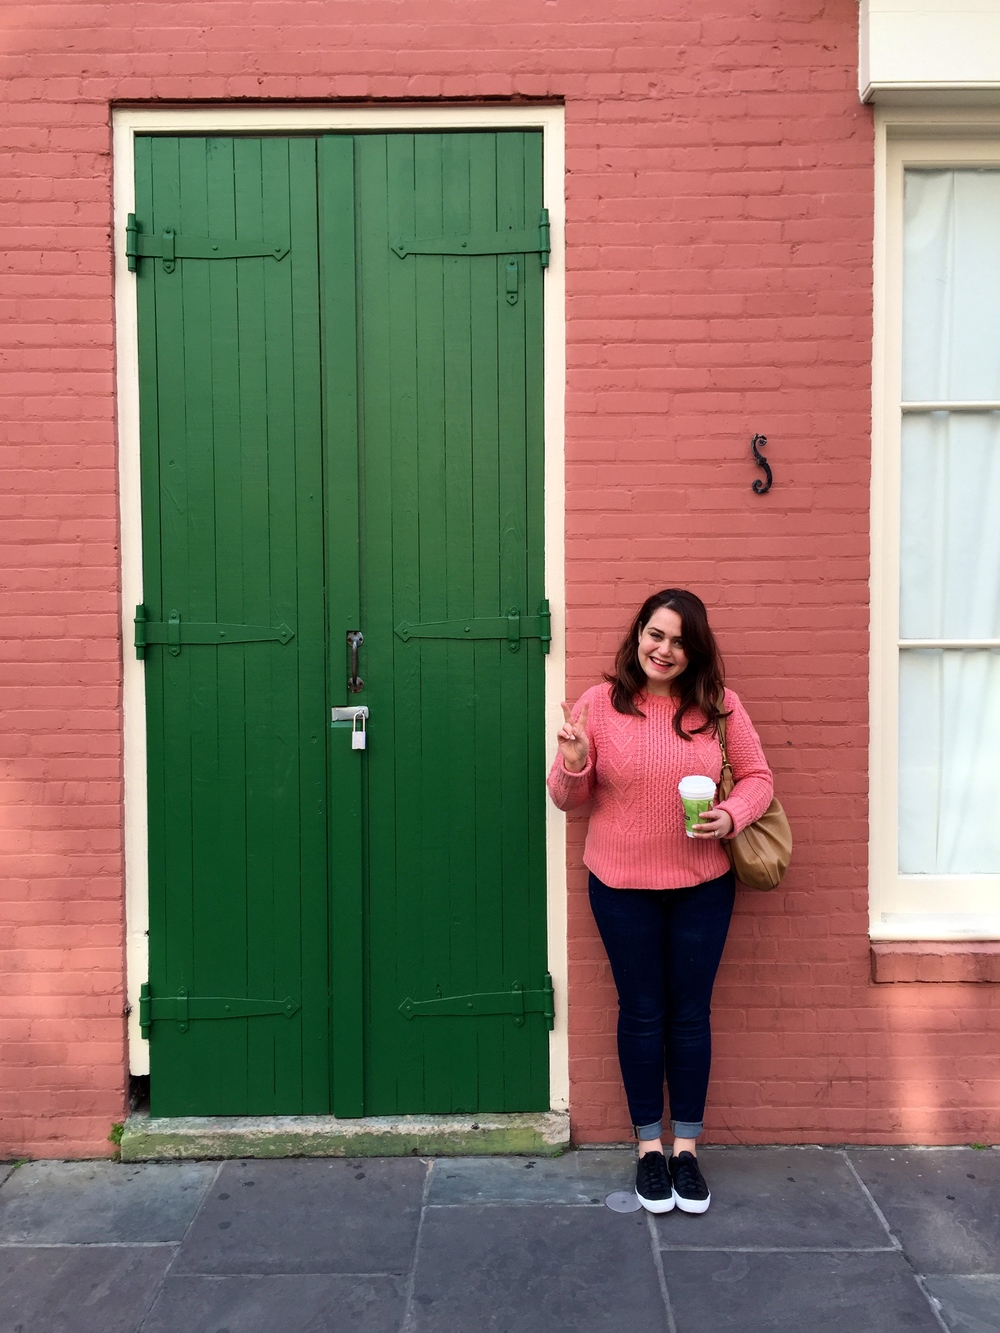 New Orleans travel guide | cremelifestyle.com